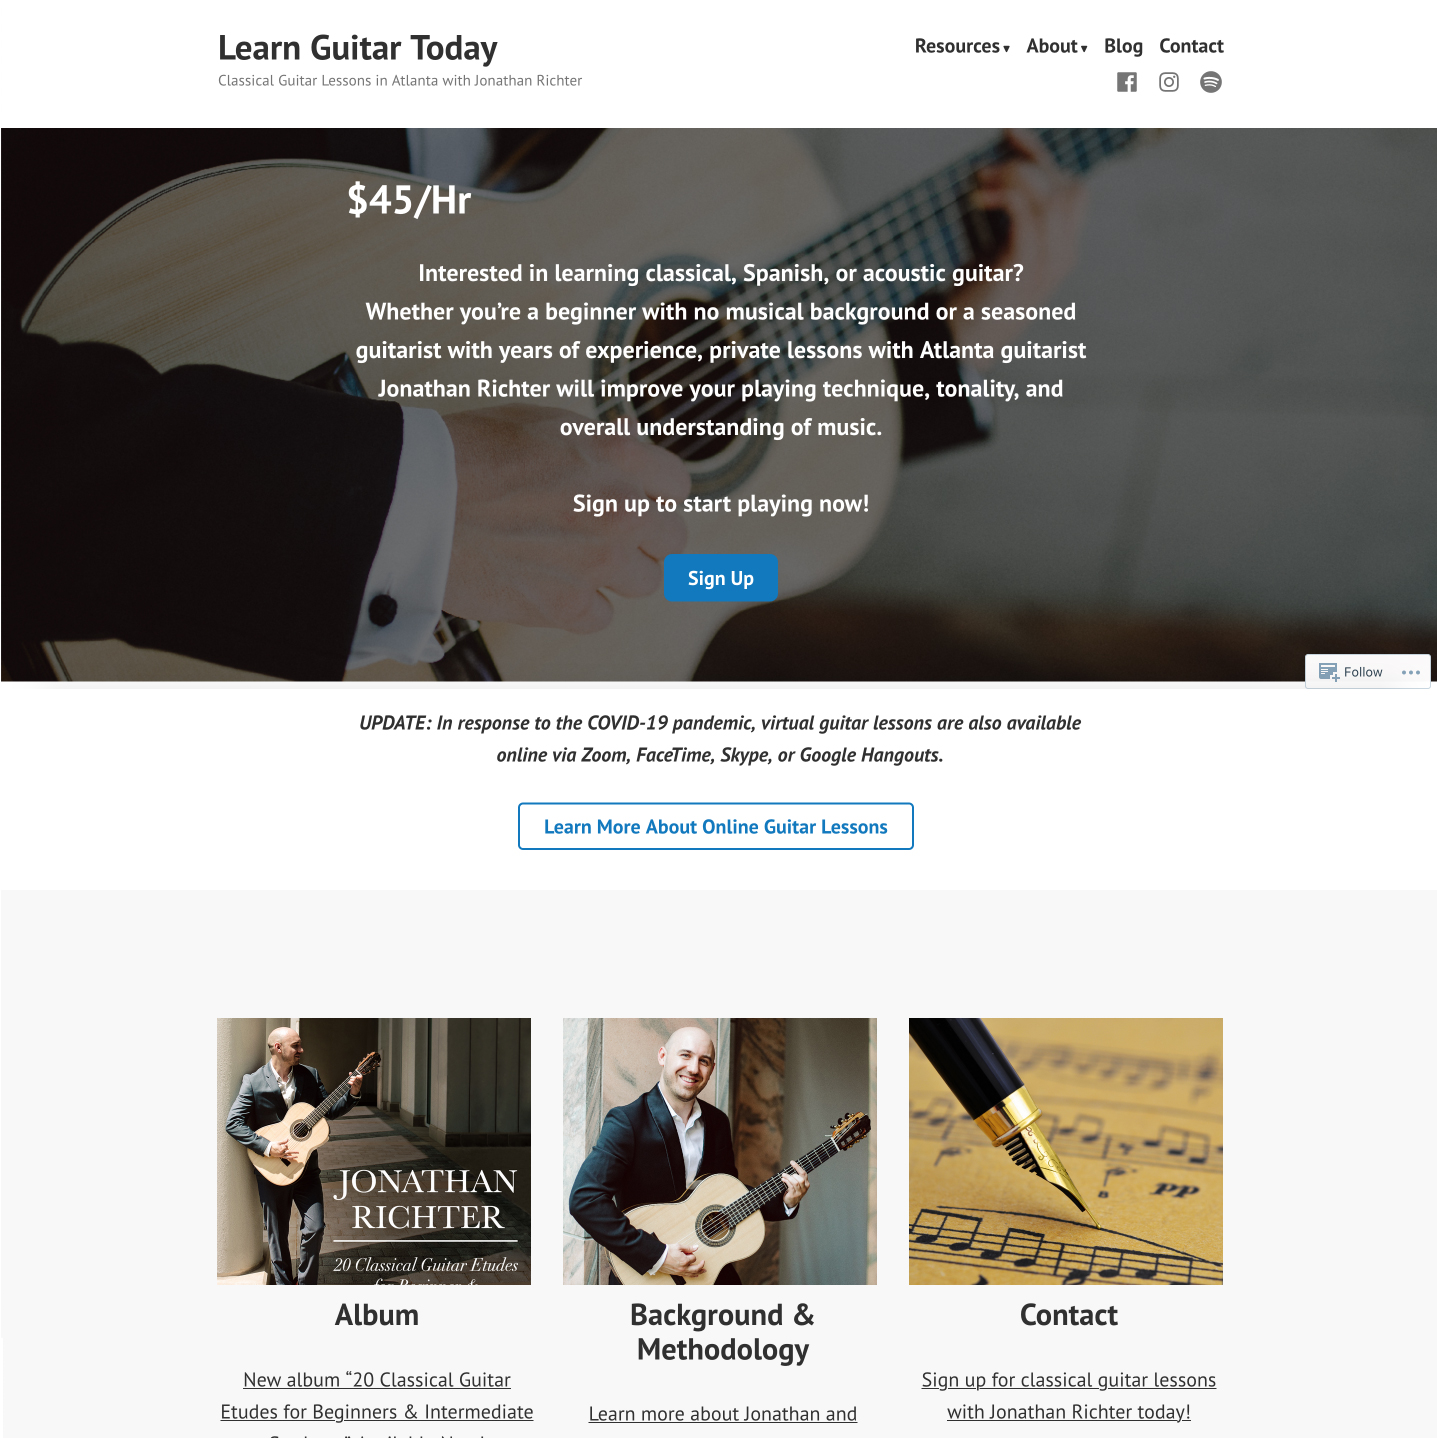 Atlanta classical guitarist website developed by Winnona Partners